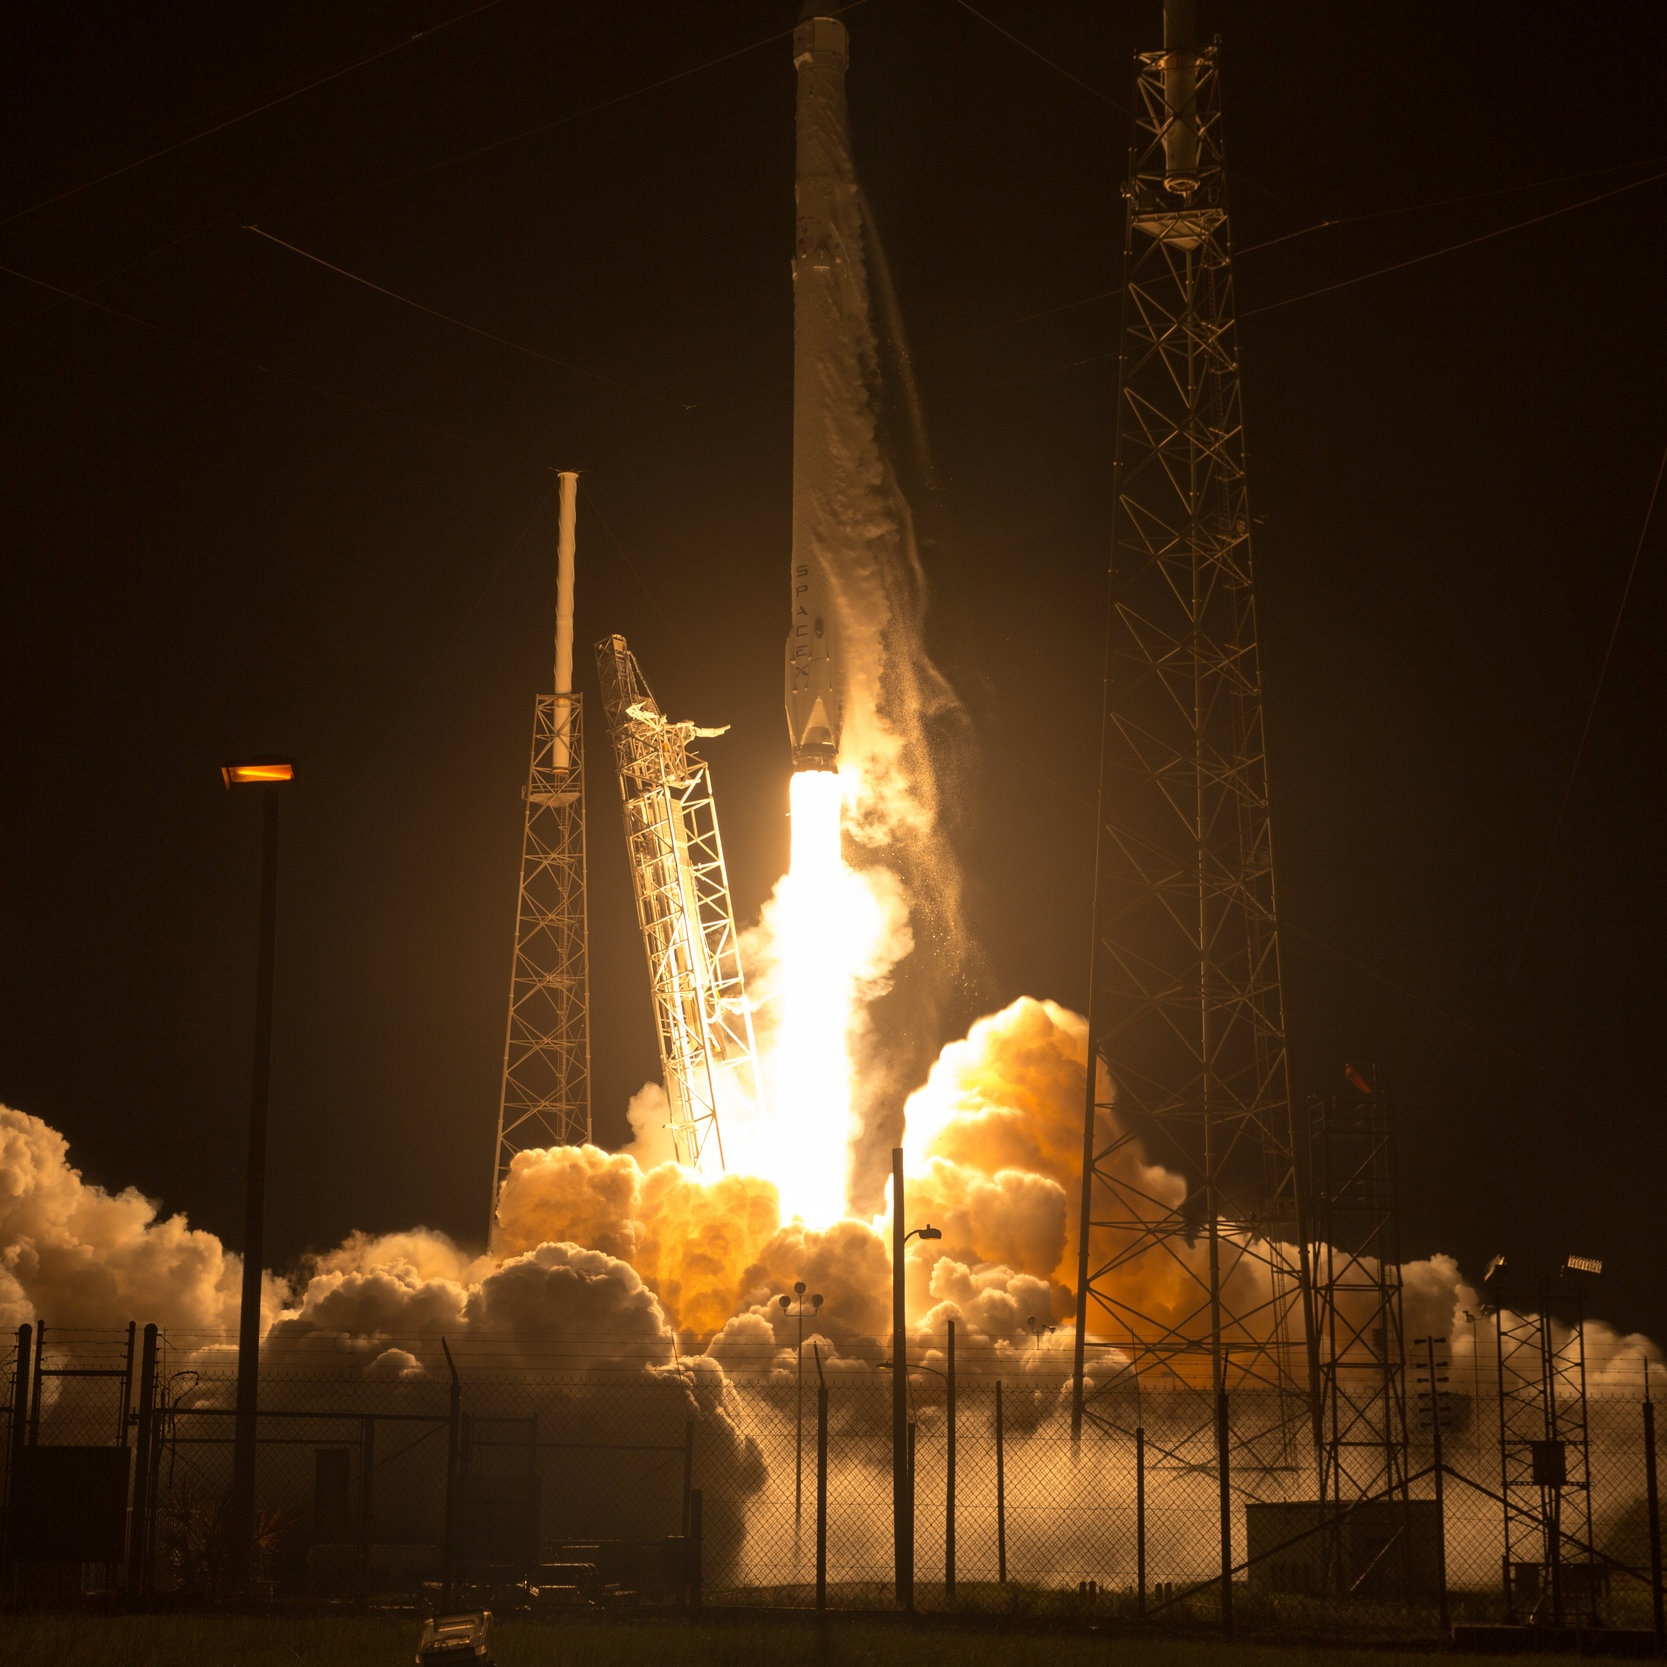 Friday, May 3 - 3:12am EDT - Space Launch Complex 40A SpaceX Falcon 9 rocket will launch the company's CRS-17 mission to the International Space Station.The rocket's first stage will attempt a landing on SpaceX's Of Course I Still Love You drone ship.